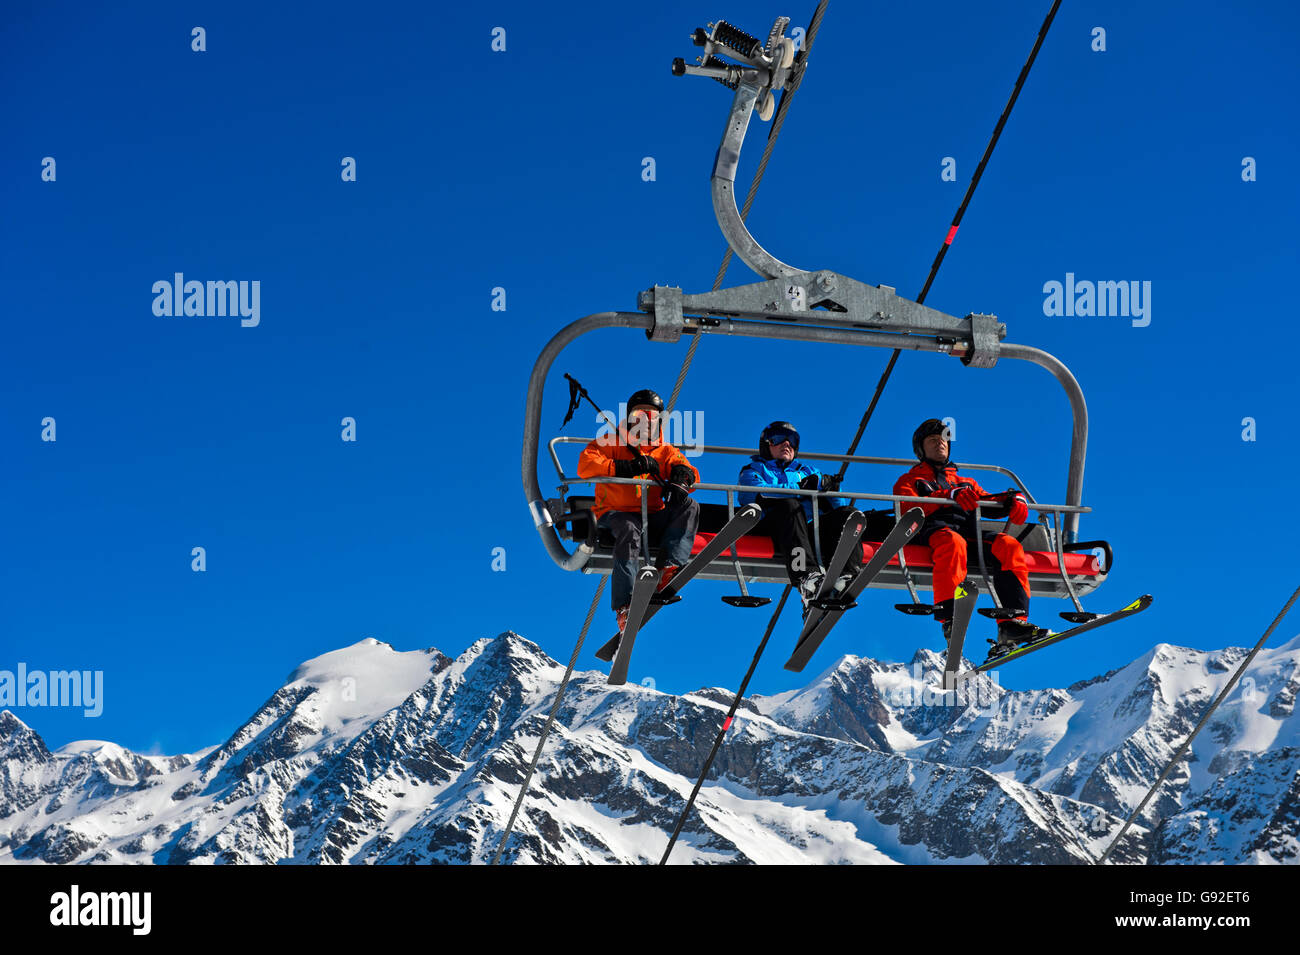 Skiers on a chair lift in the skiing area Les Contamines-Montjoie,  Mont Blanc massif behind, Haute-Savoie, France - Stock Image